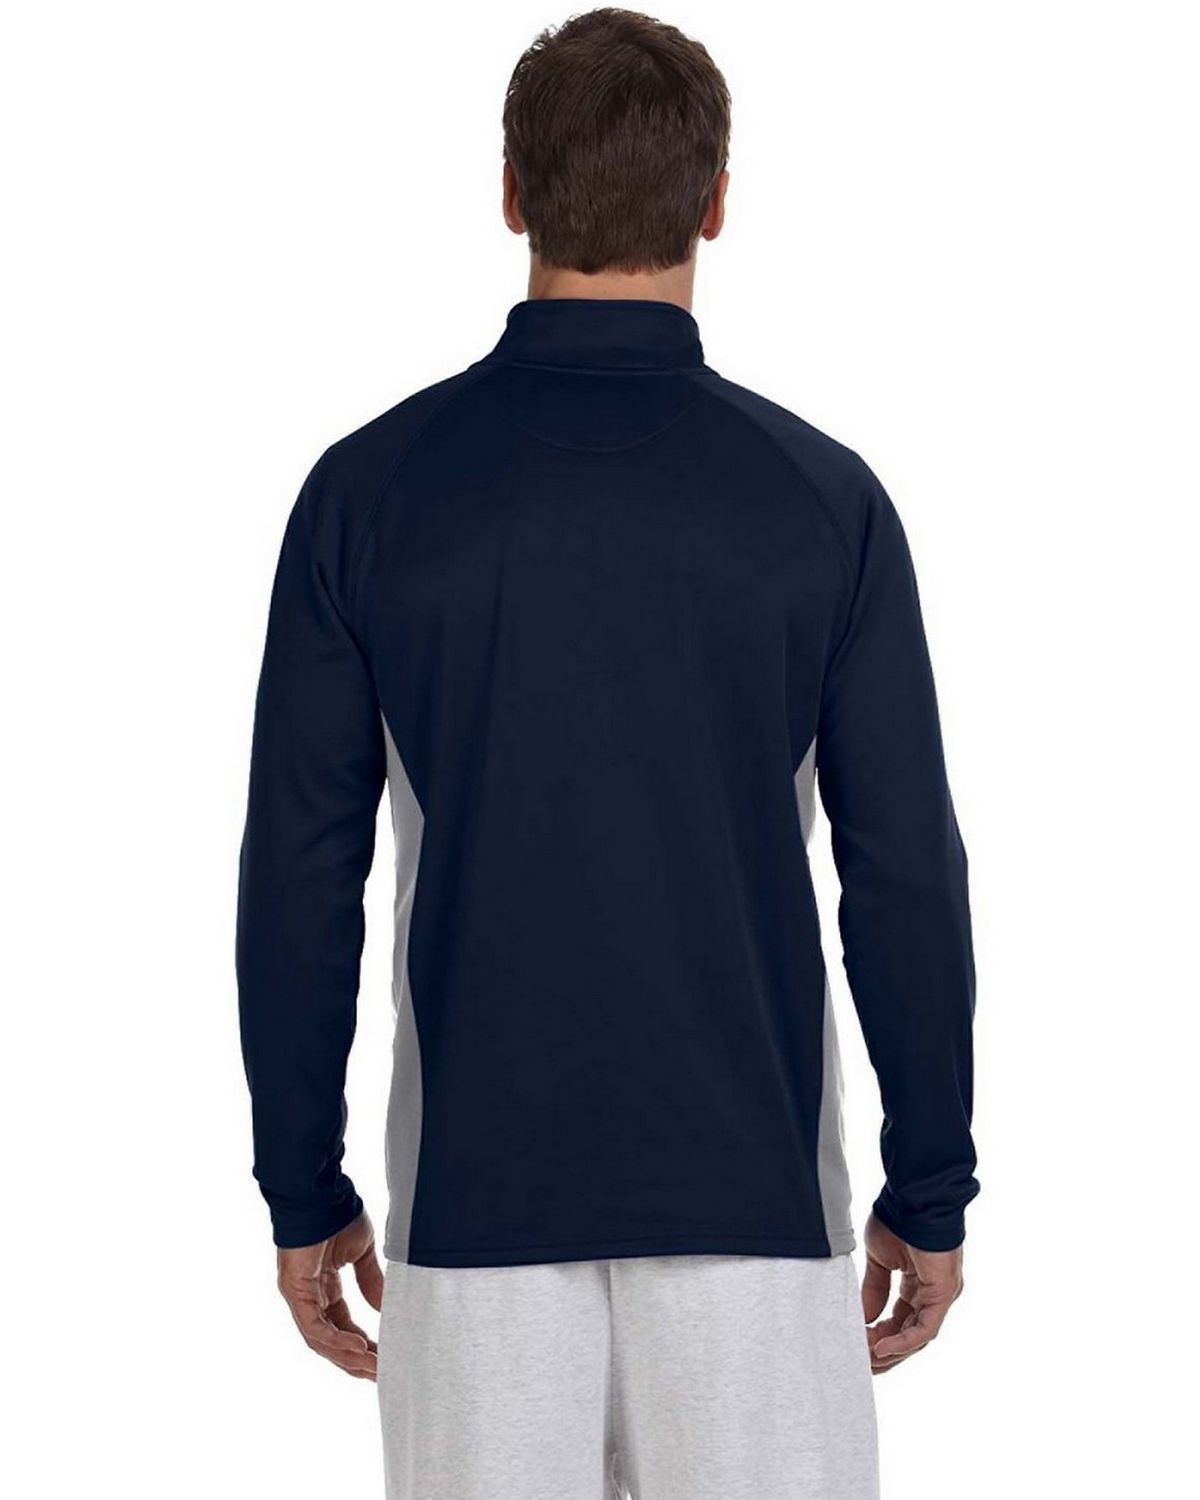 6dd5fb7b Reviews about Champion S230 Performance Colorblock Quarter Zip Pullover